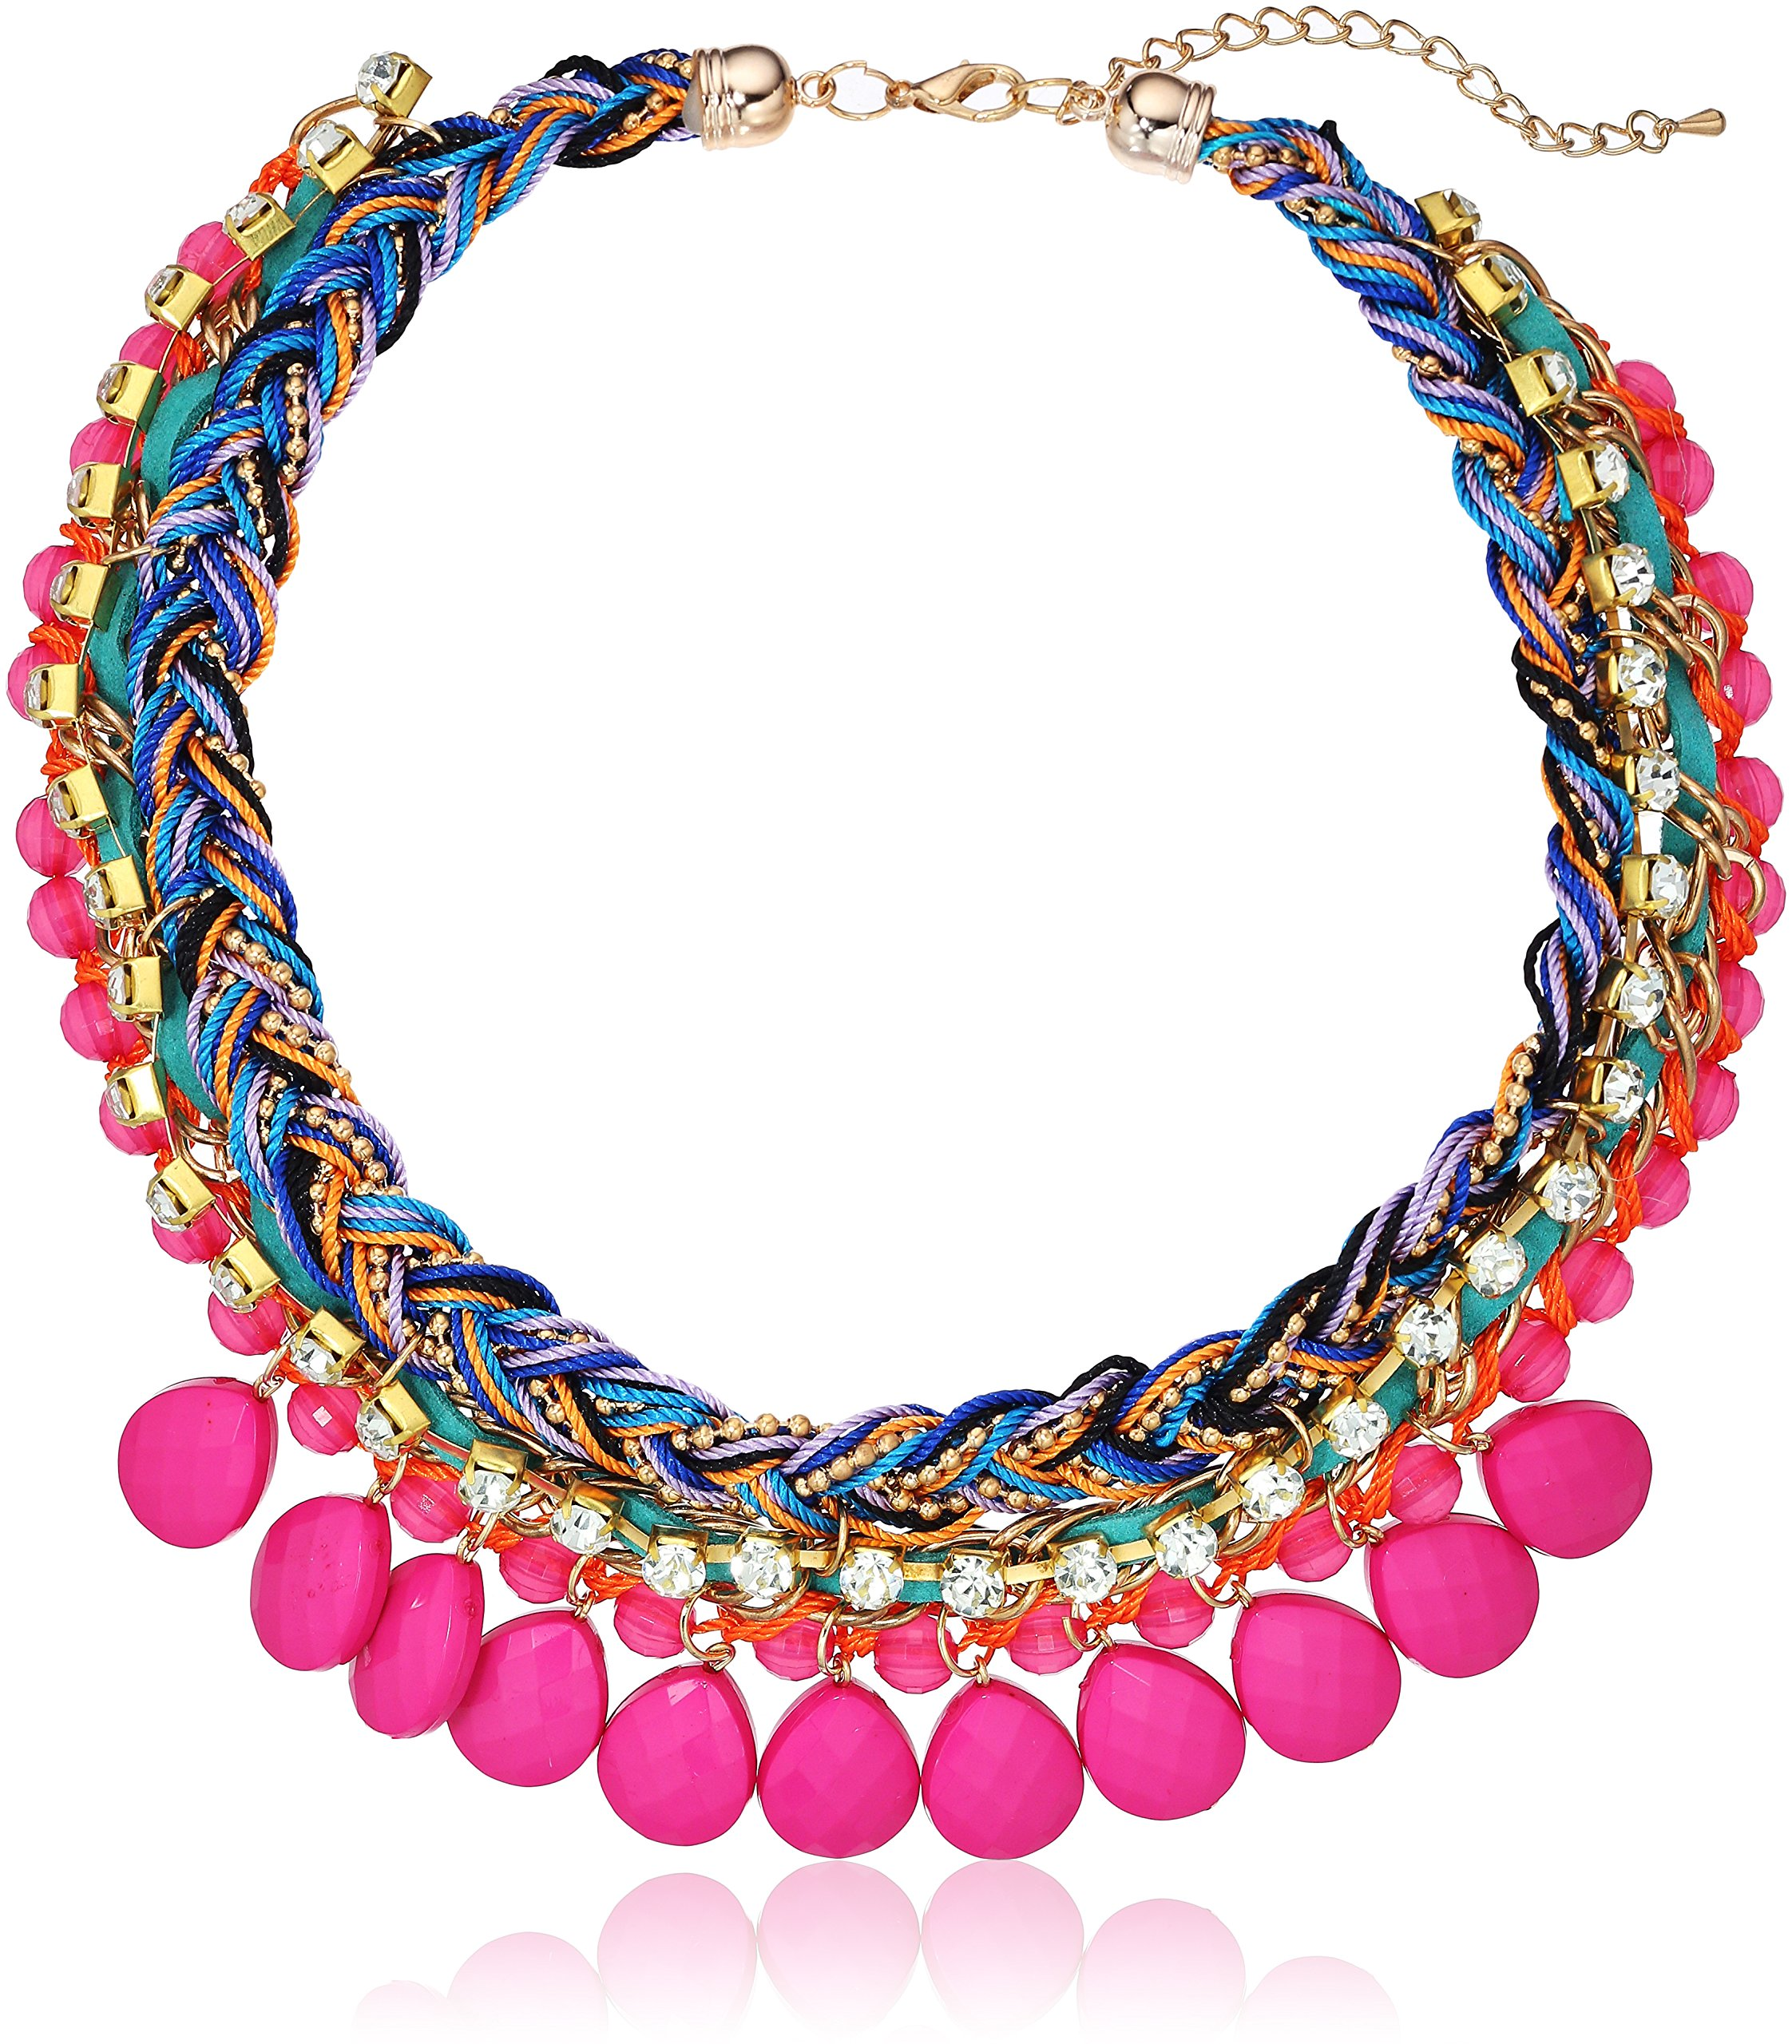 Pink Tone Morrocan Collar Braided Statement Chain Necklace, 20''